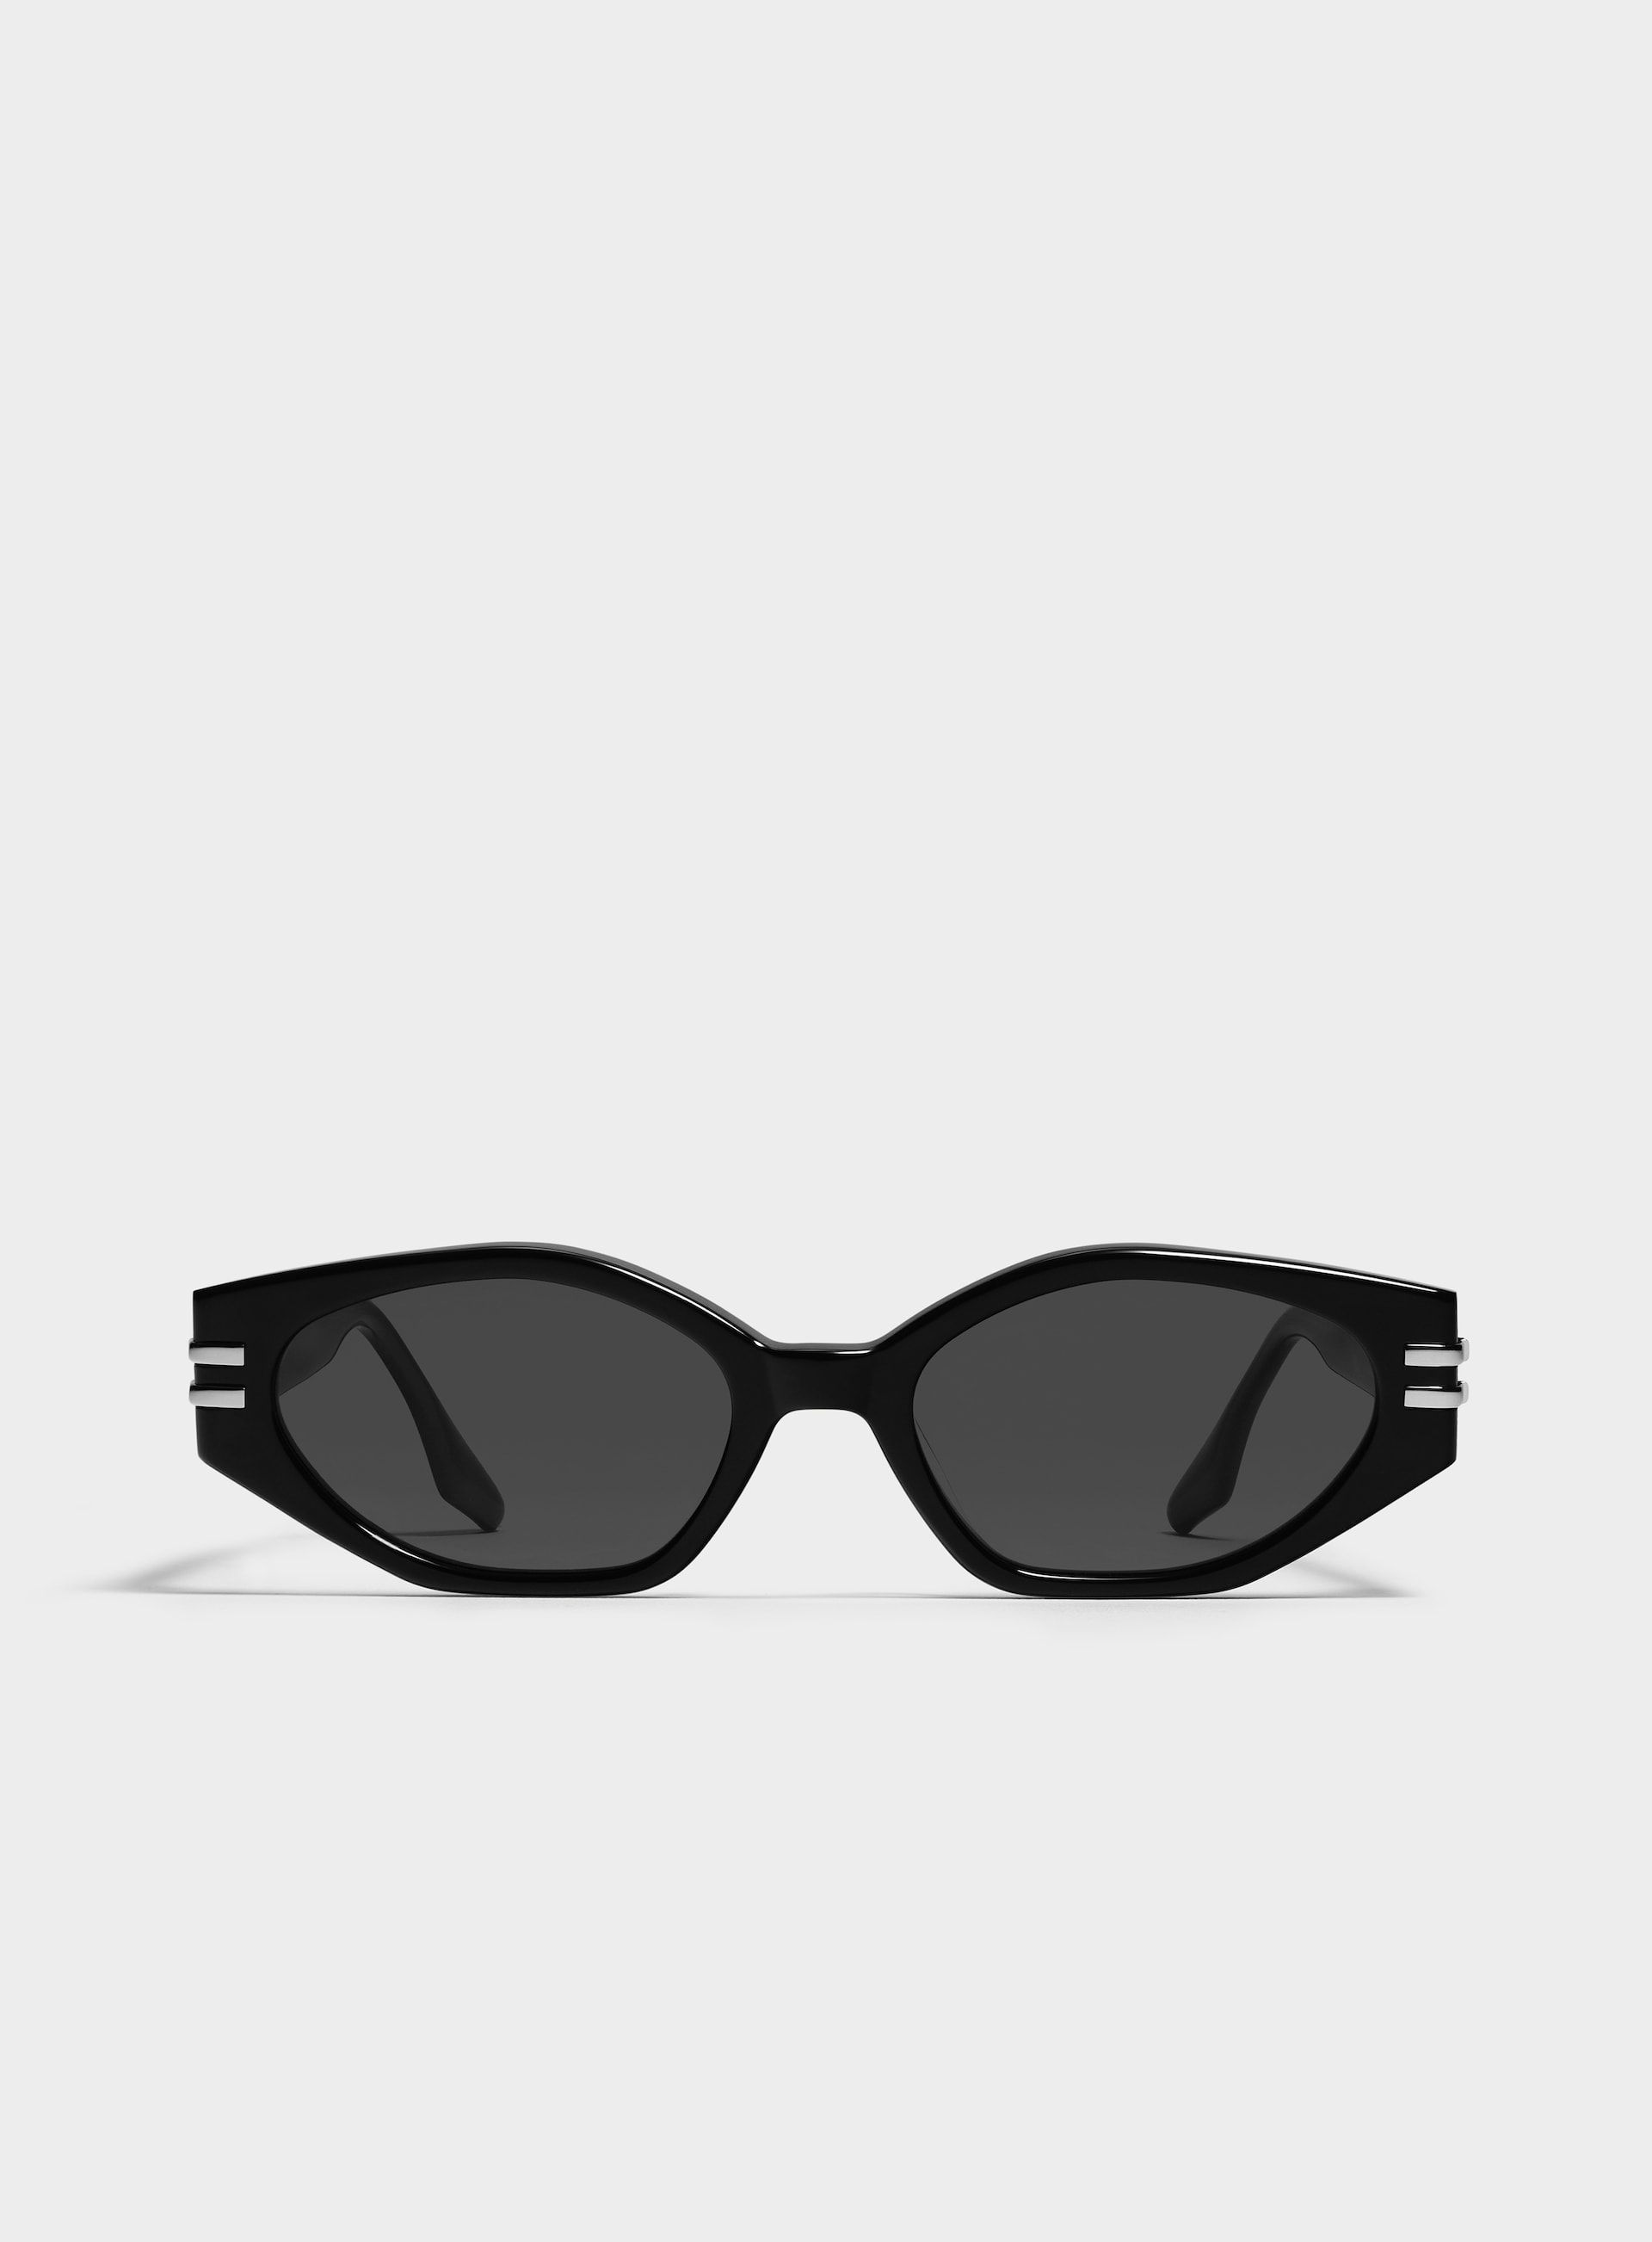 Ghost 01 by Gentle Monster, available on gentlemonster.com for $320 Hailey Baldwin Sunglasses Exact Product